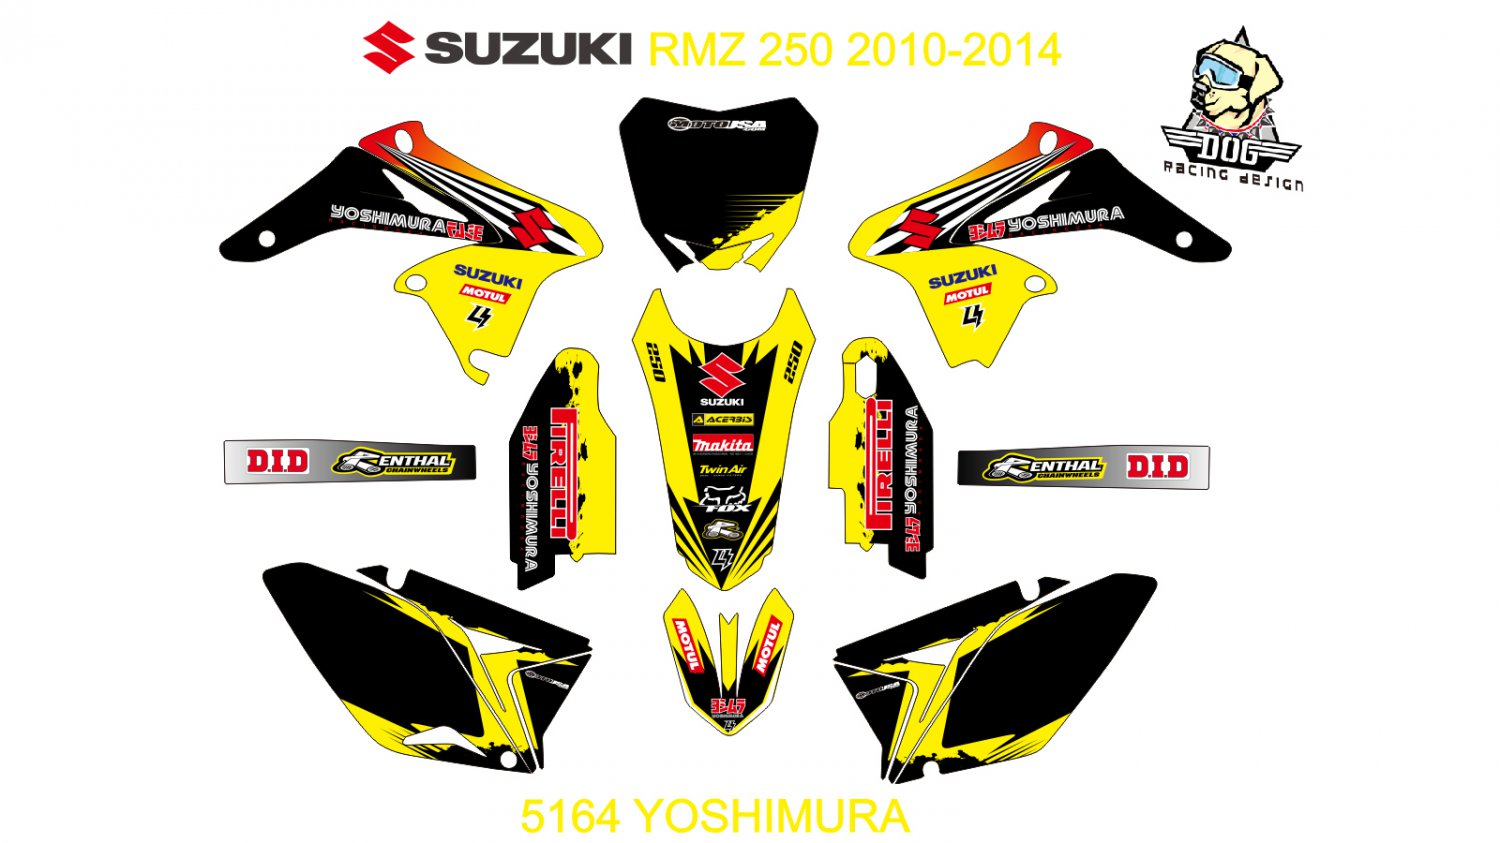 SUZUKI RMZ 250 2010-2014 GRAPHIC DECAL KIT CODE.5164